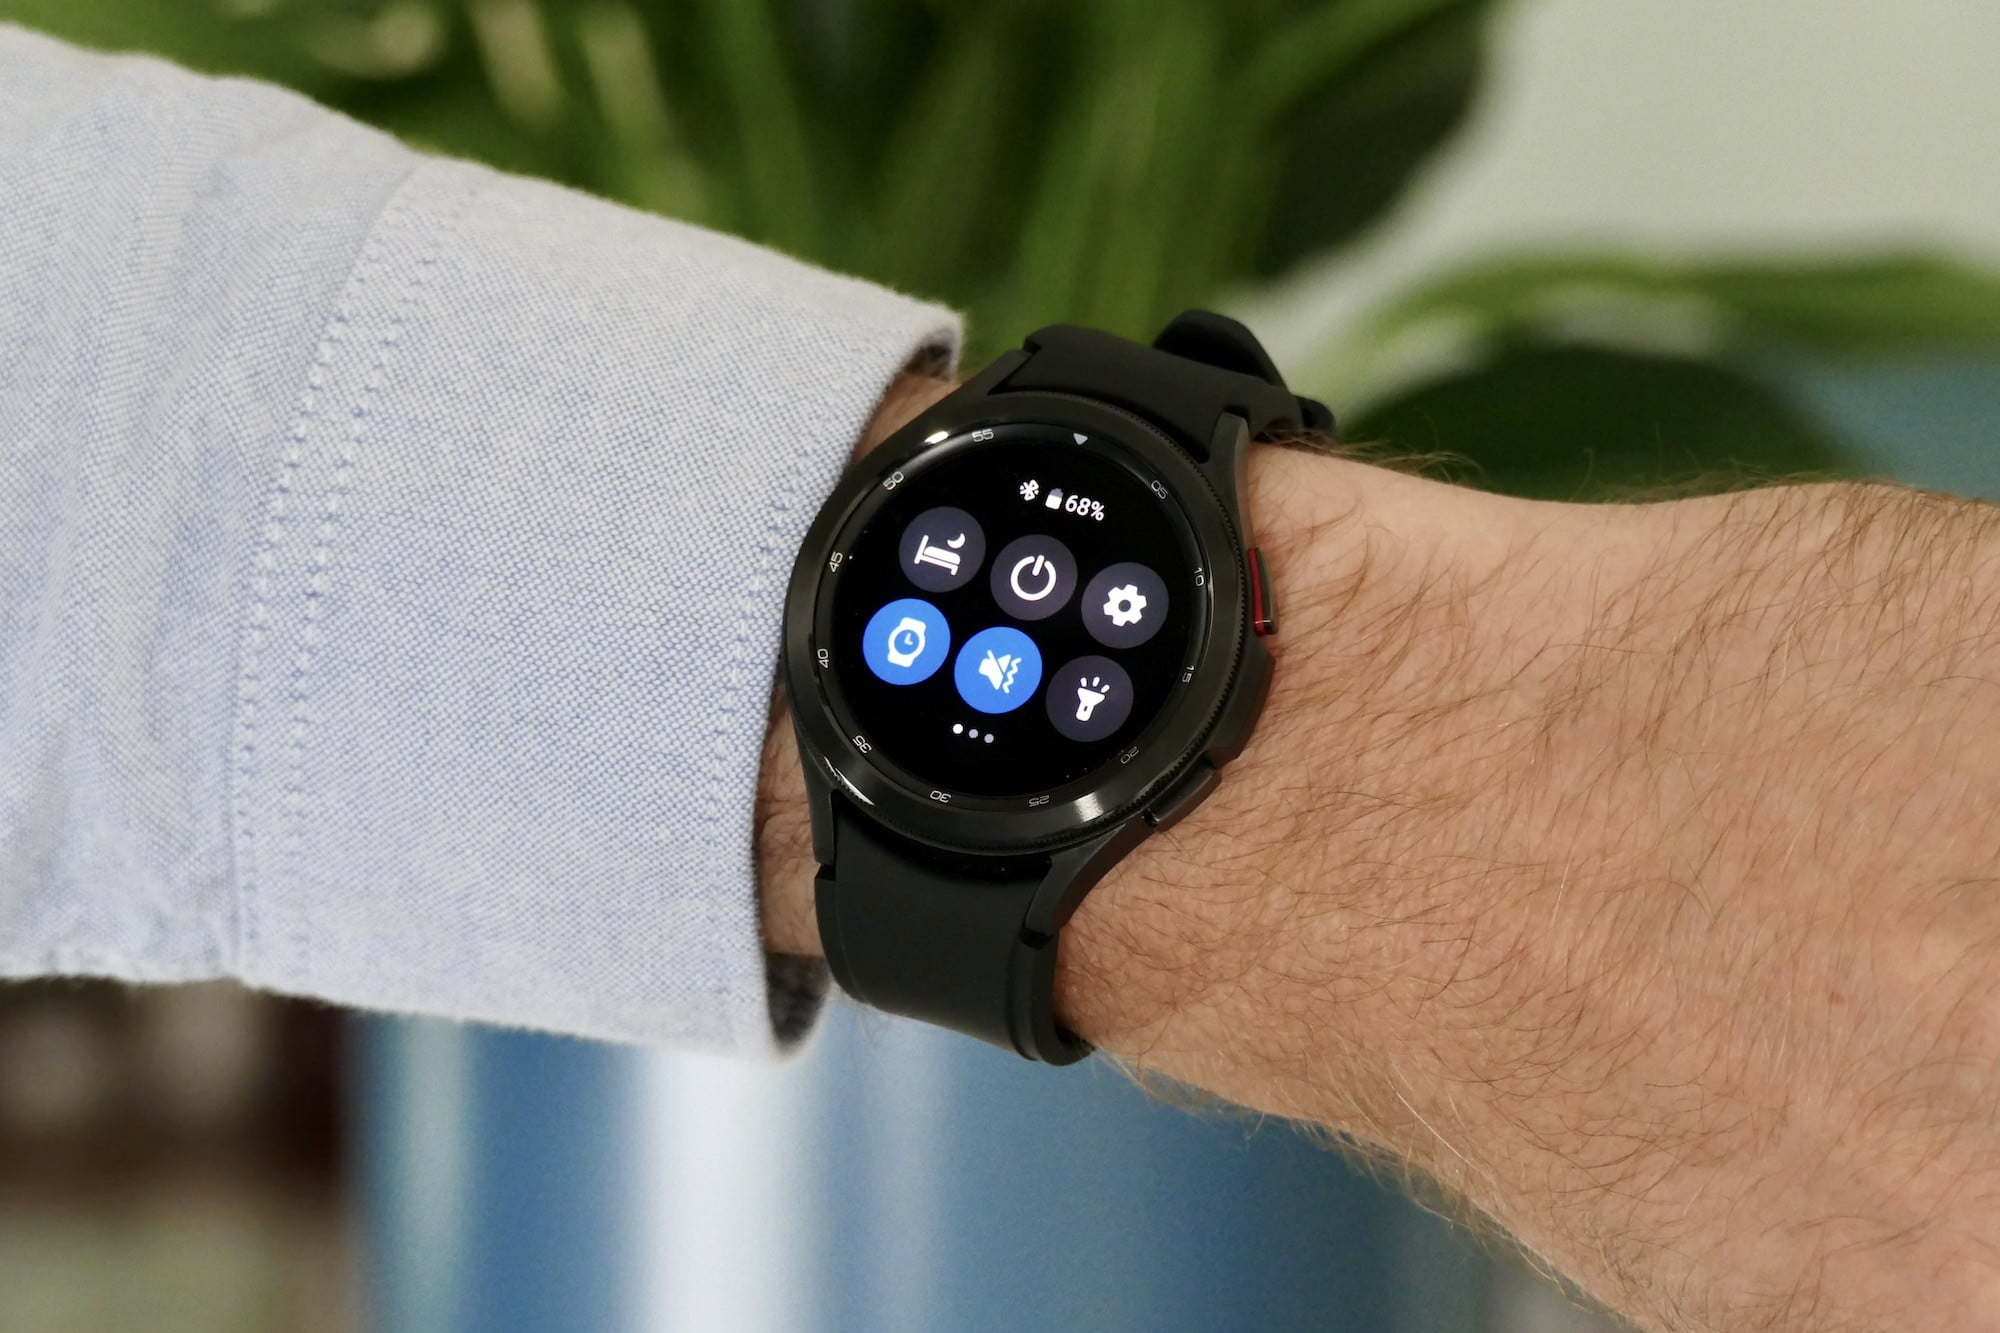 Settings on the Galaxy Watch 4 Classic.